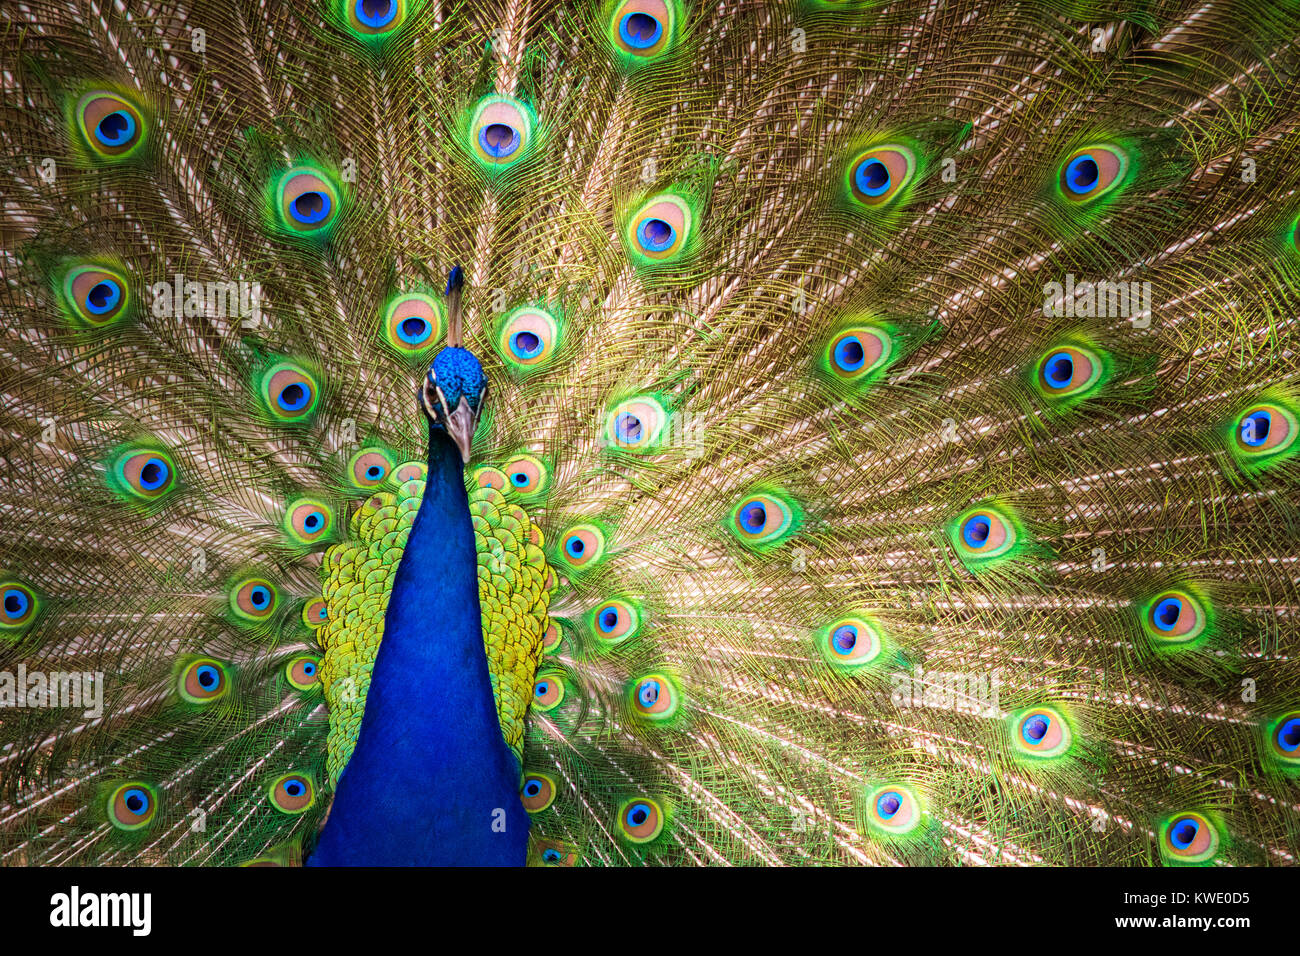 The Beauty of a Peacock. - Stock Image